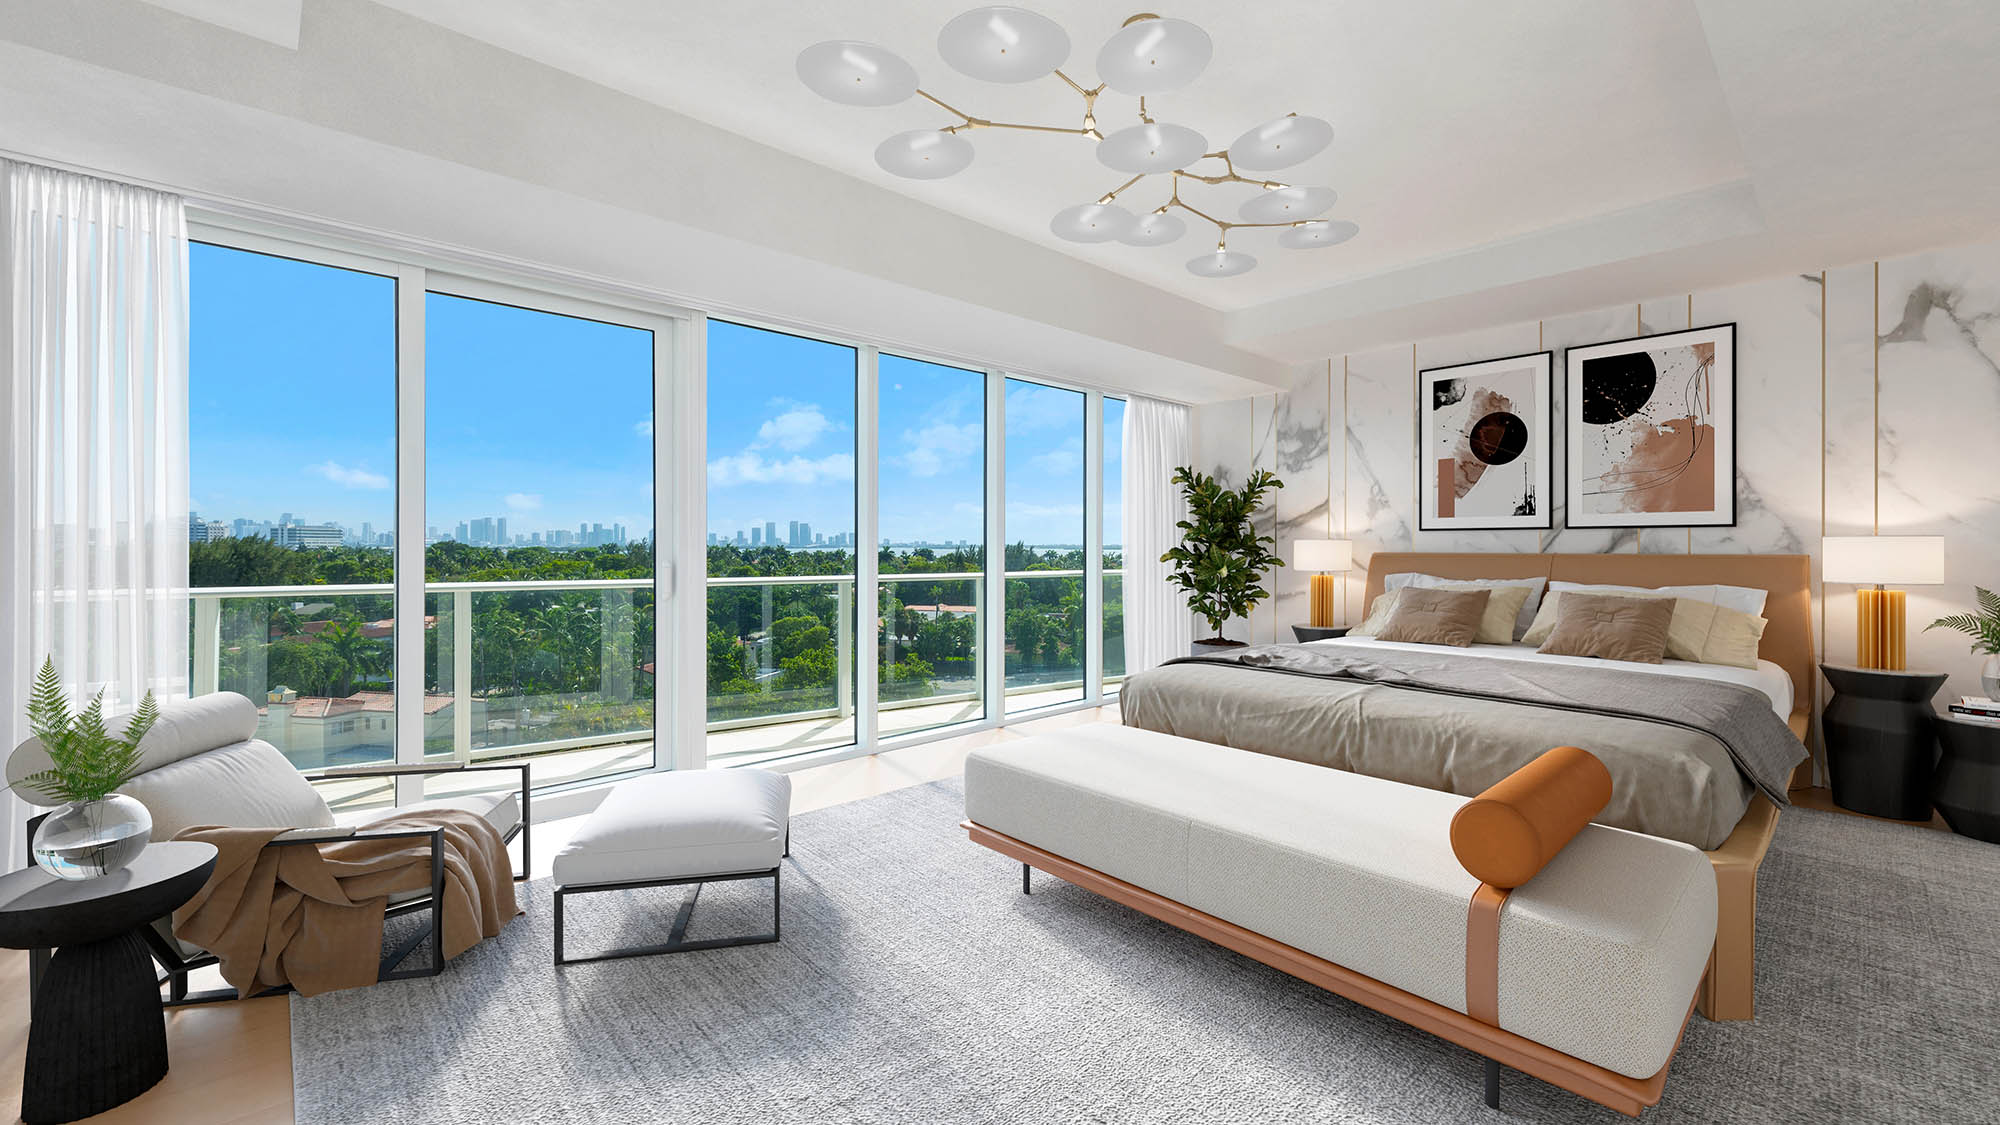 Expansive Terraces at the Miami luxury condos of The Ritz-Carlton Residences, Miami Beach